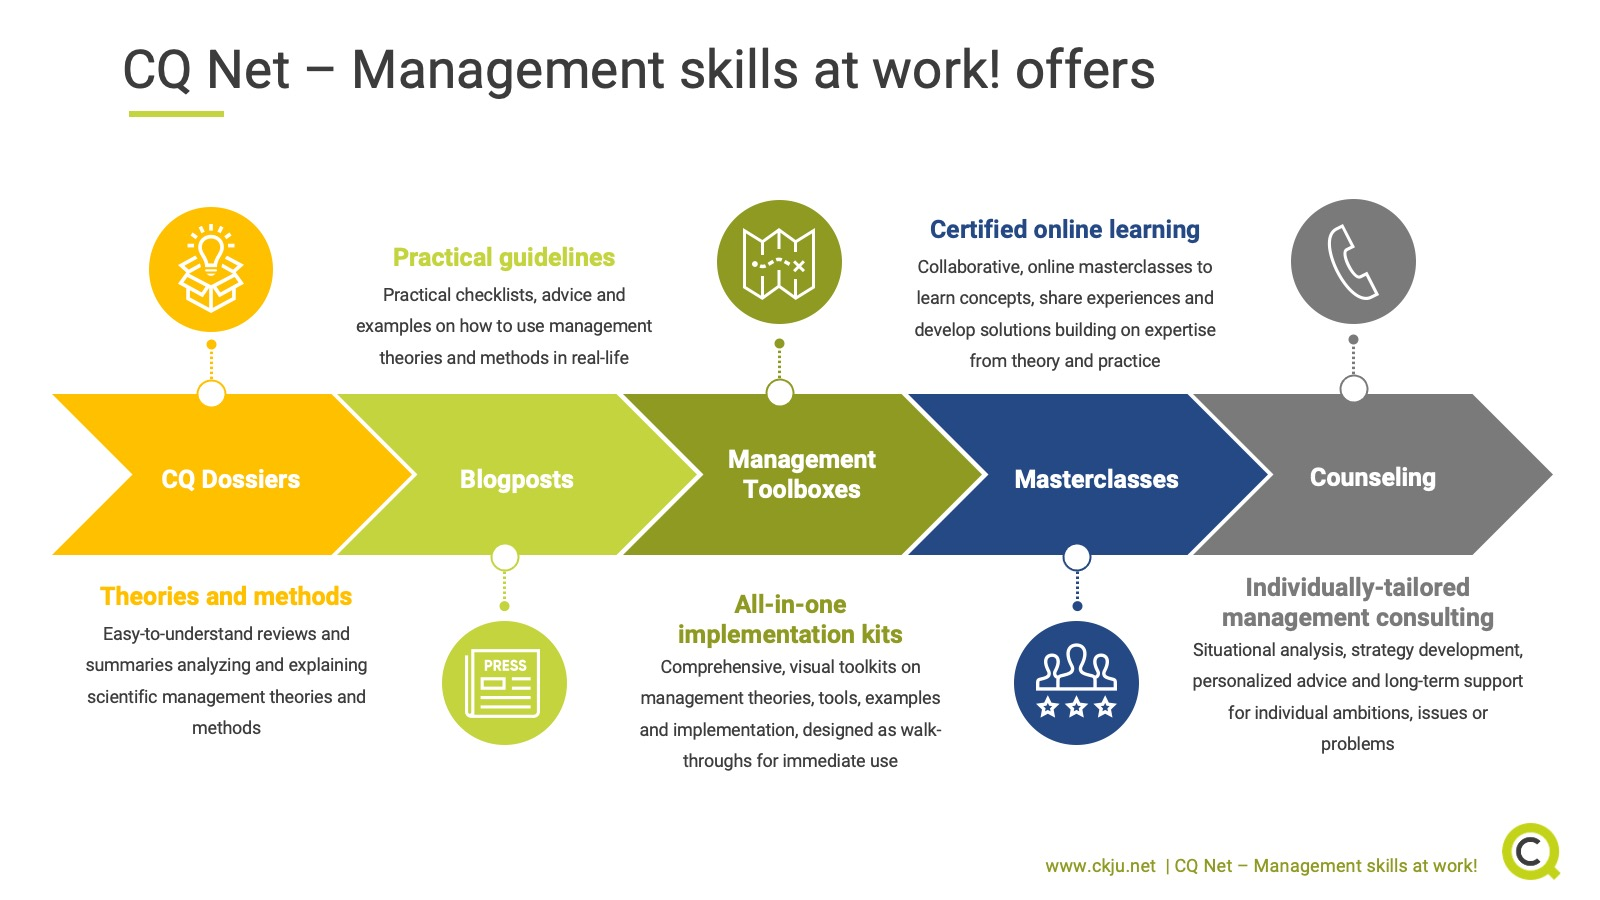 What we offer at CQ Net - Management skills at work!